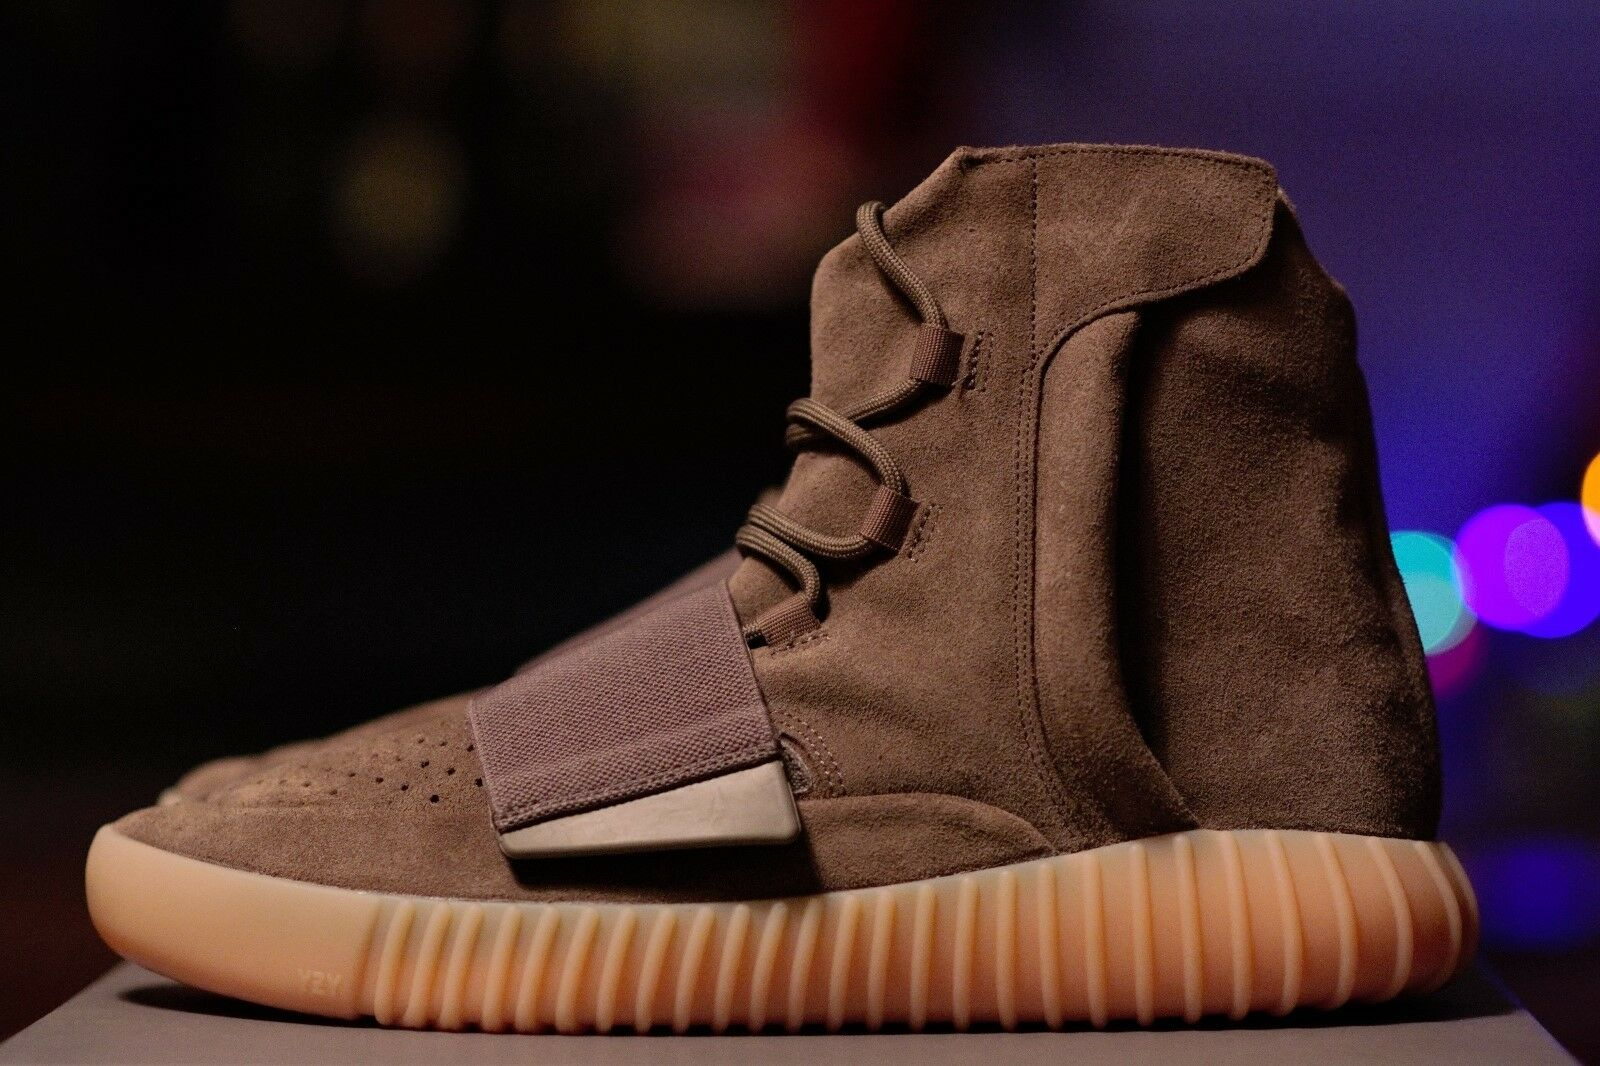 Adidas Size Yeezy Boost 750 Chocolate Brown Gum Size Adidas 10.5 BY2456 100% Authentic 048aa5